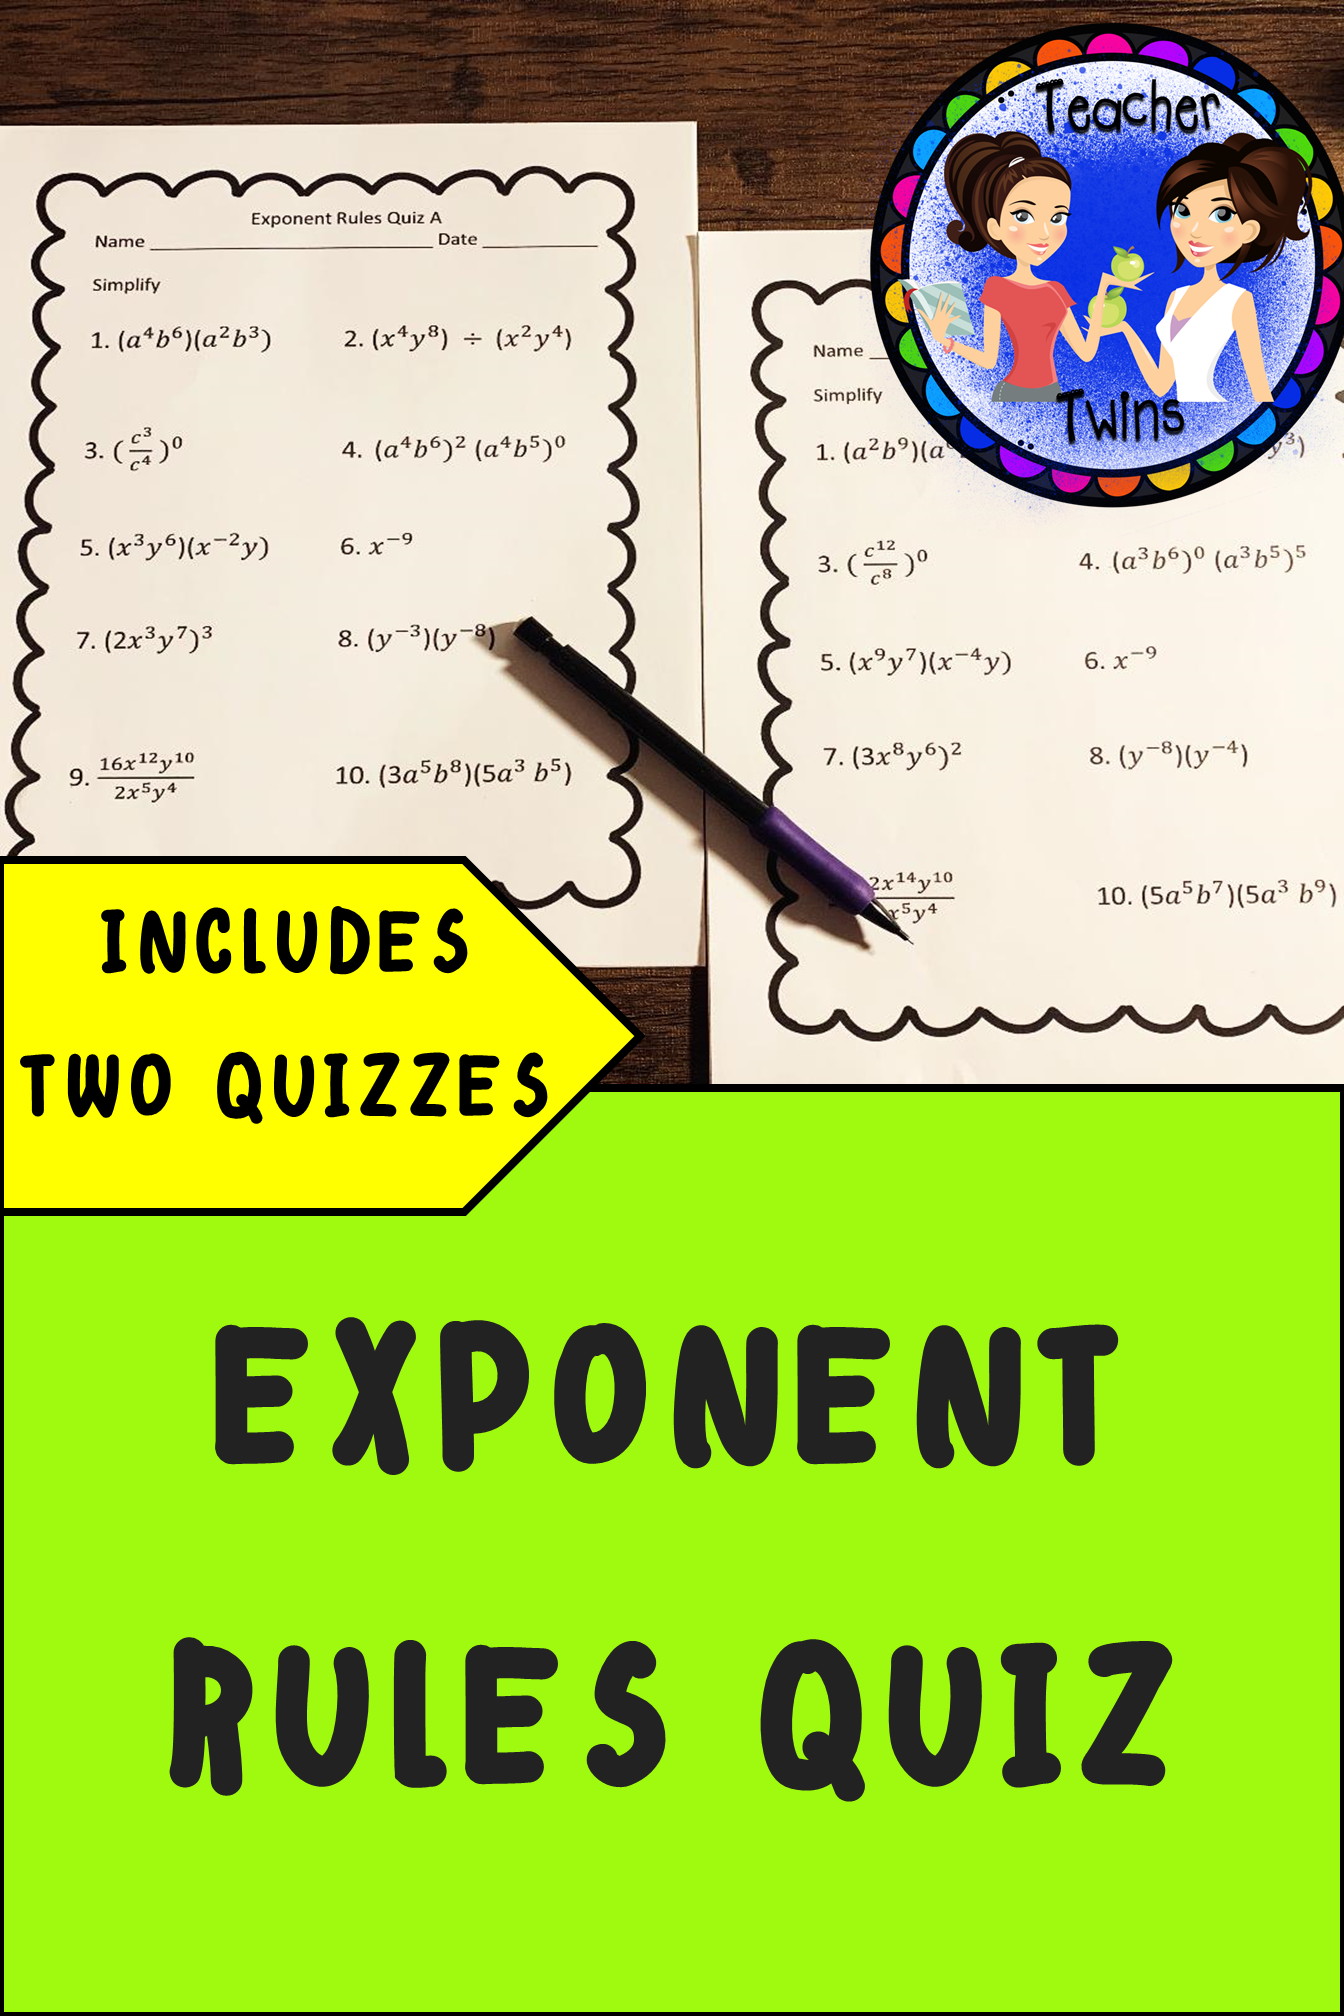 Two Different 10 Question Quizzes On Exponent Rules Rules